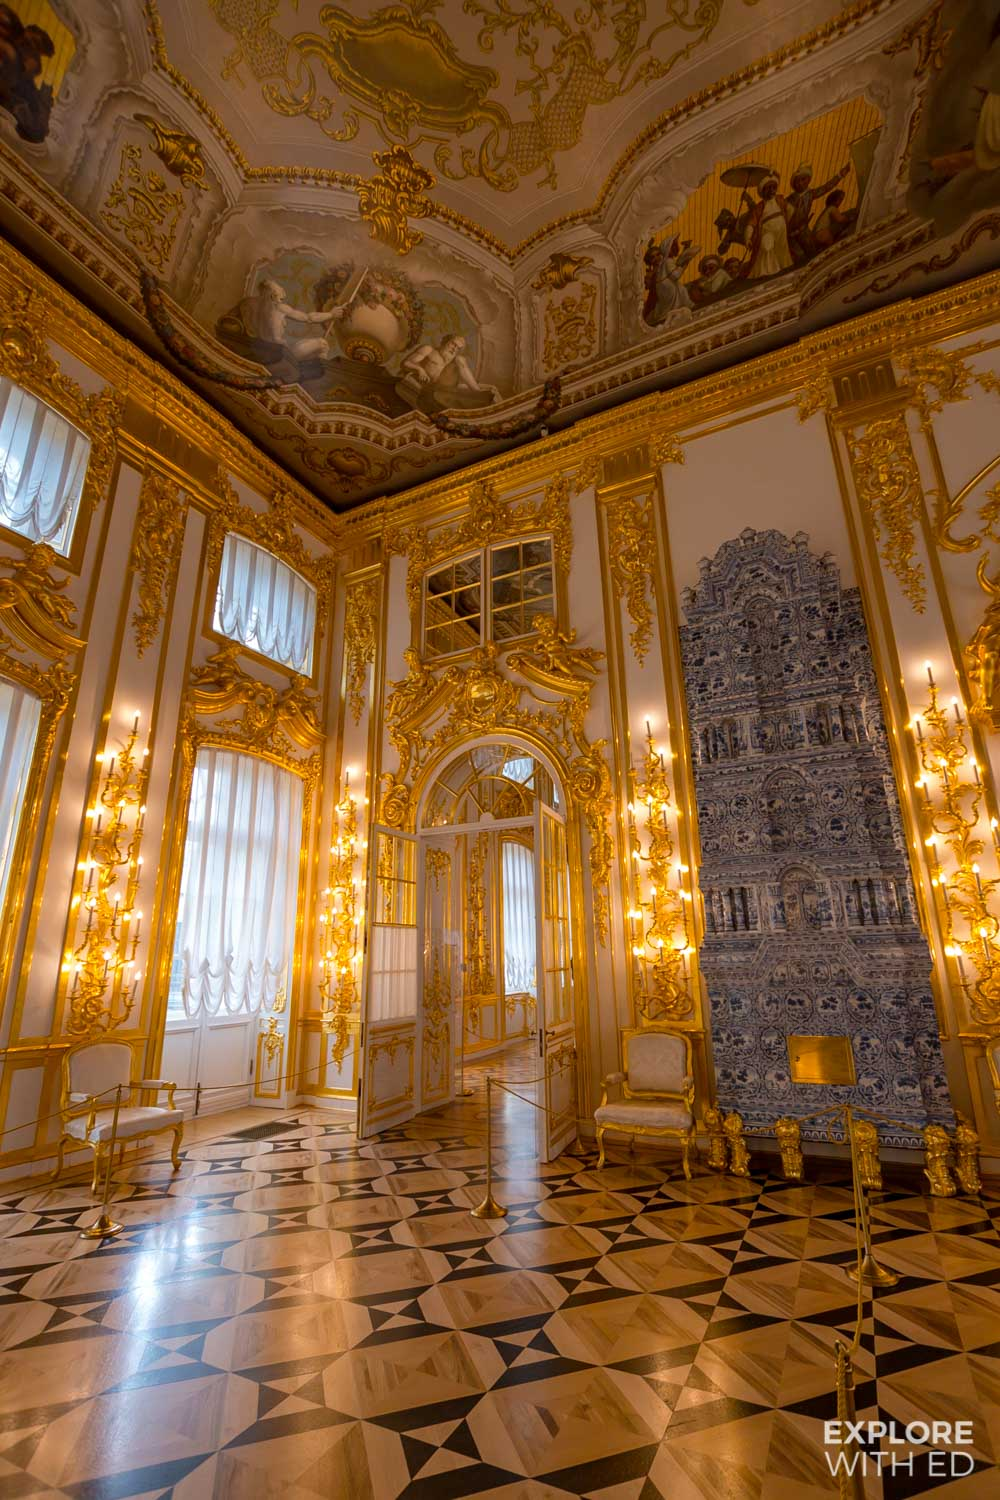 Grand Dining Room and Fireplace in Catherine Palace, Russia